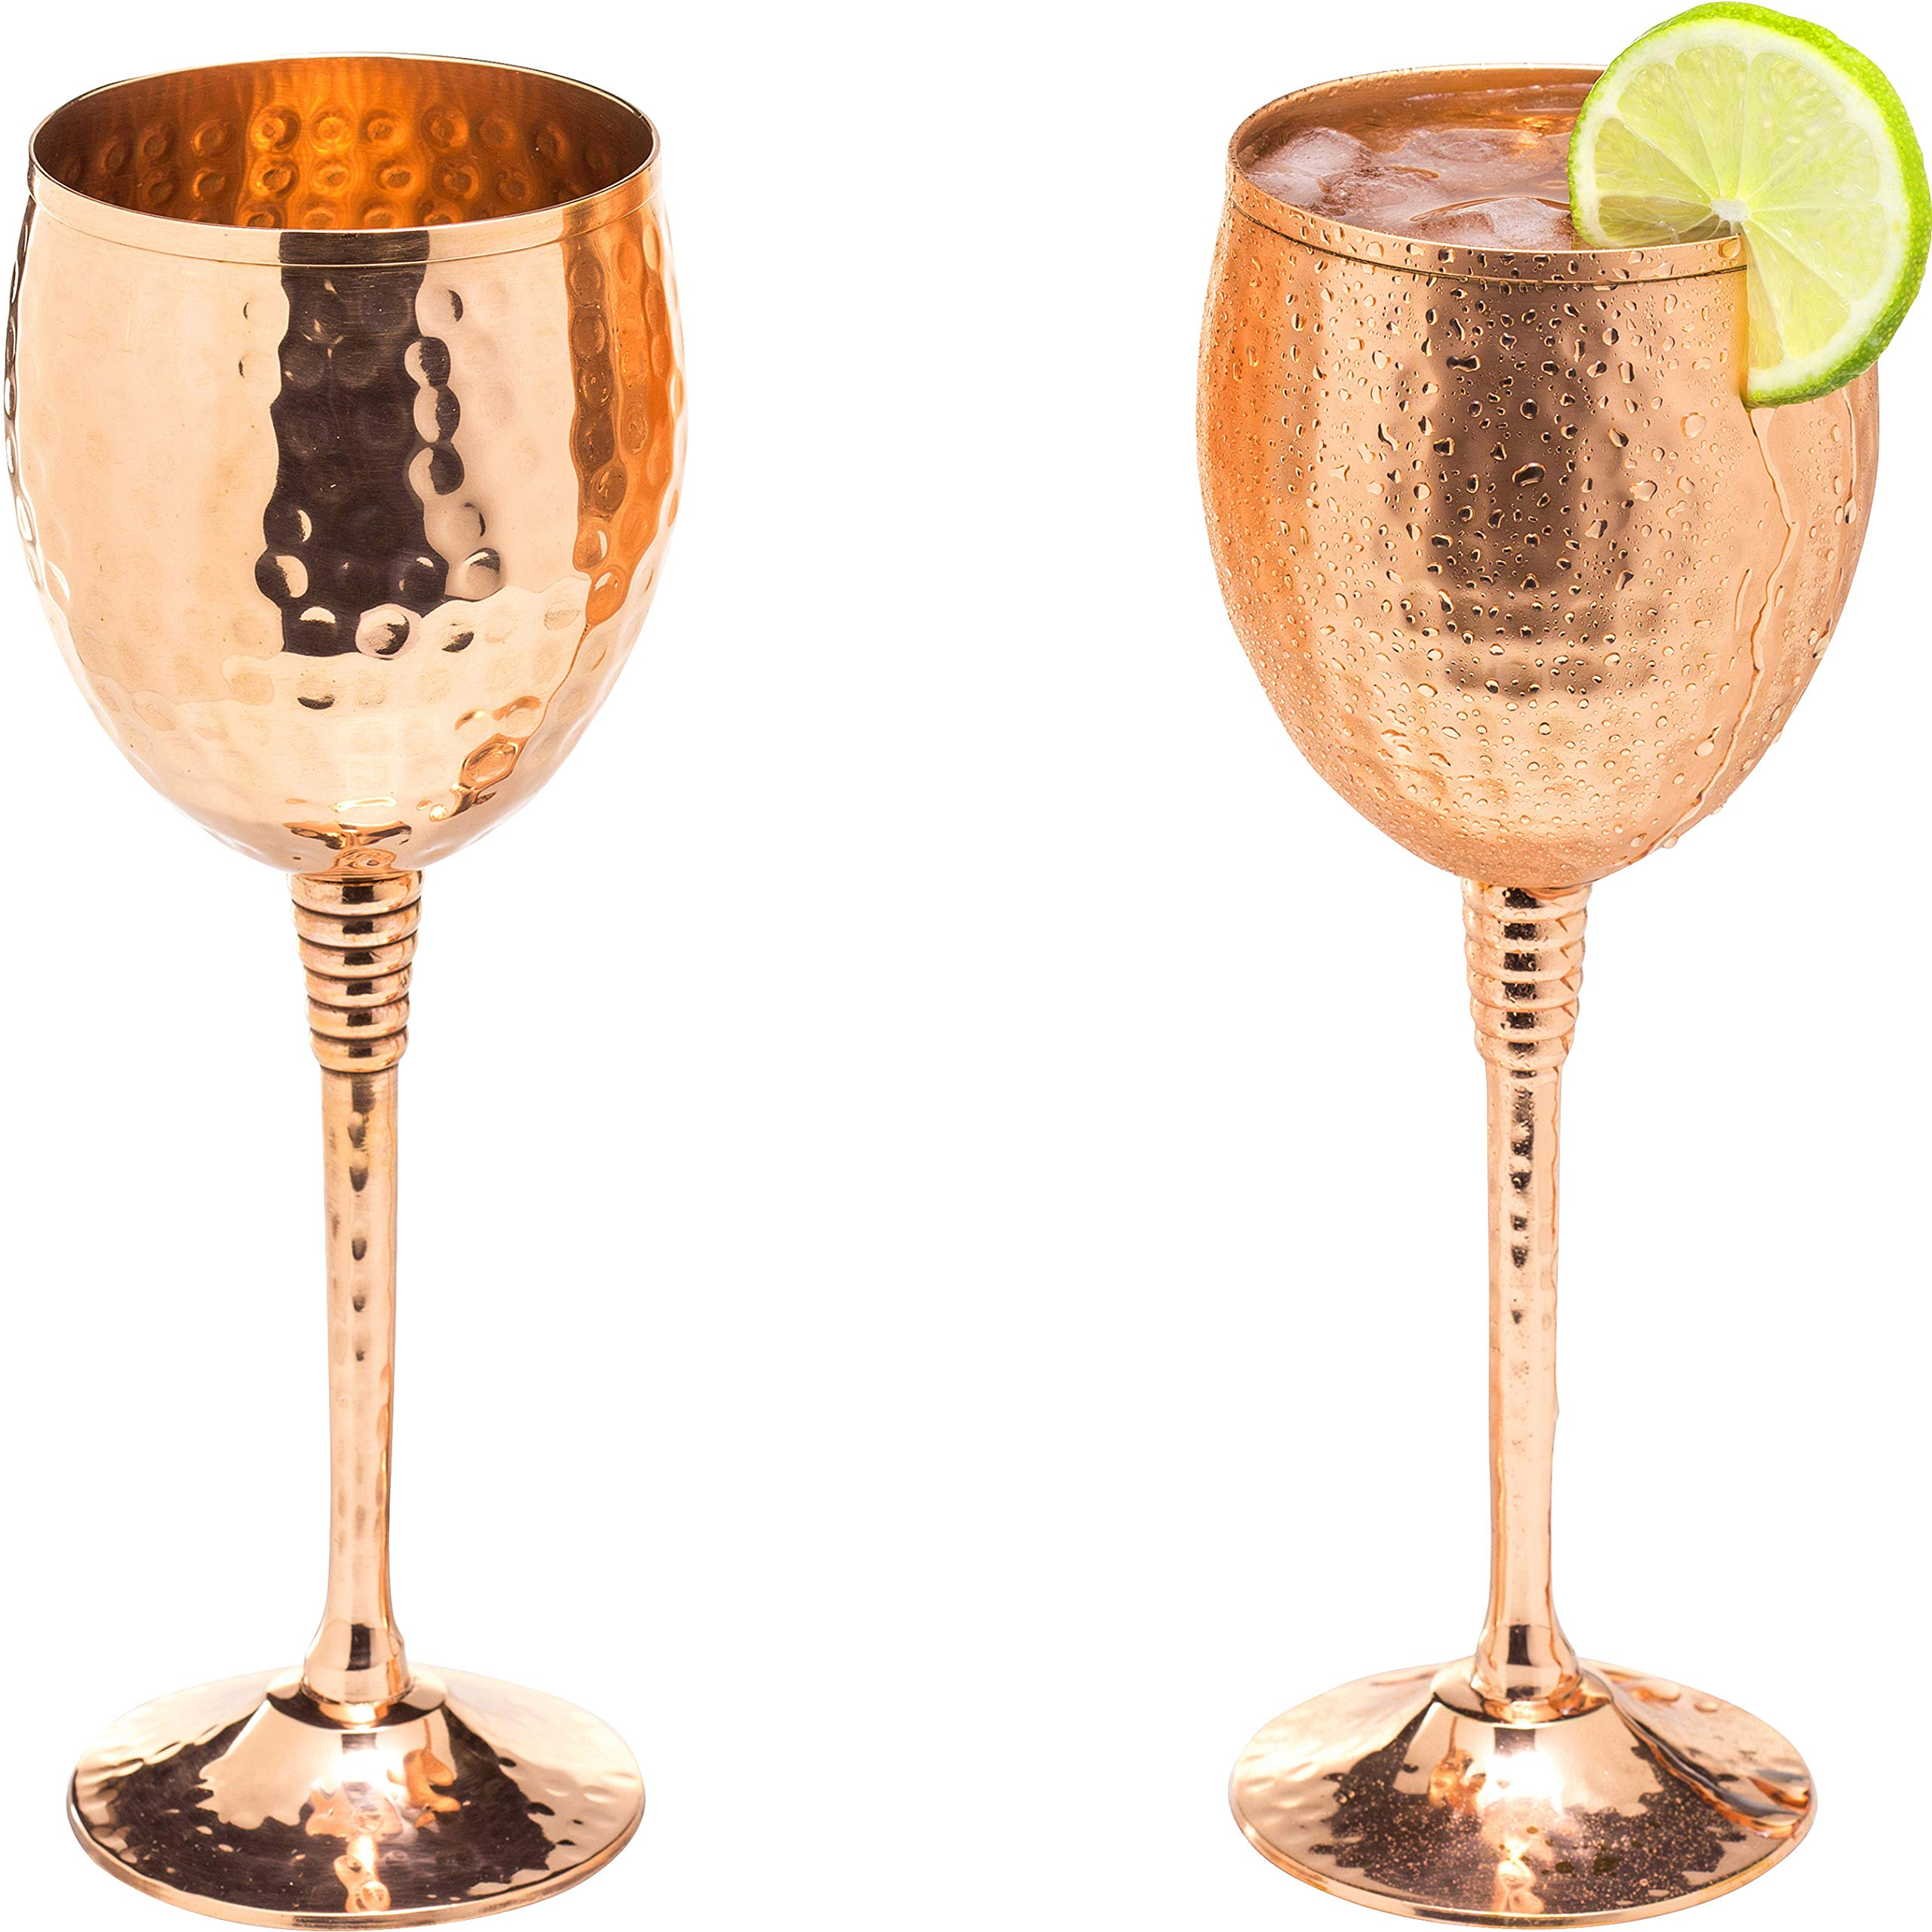 Copper wine glasses set of 2 - 11oz gleaming 100% solid hammered copper wine cups on brass copper plated stems - a perfect gift for men and women - great glasses for red or white wine and Moscow mules